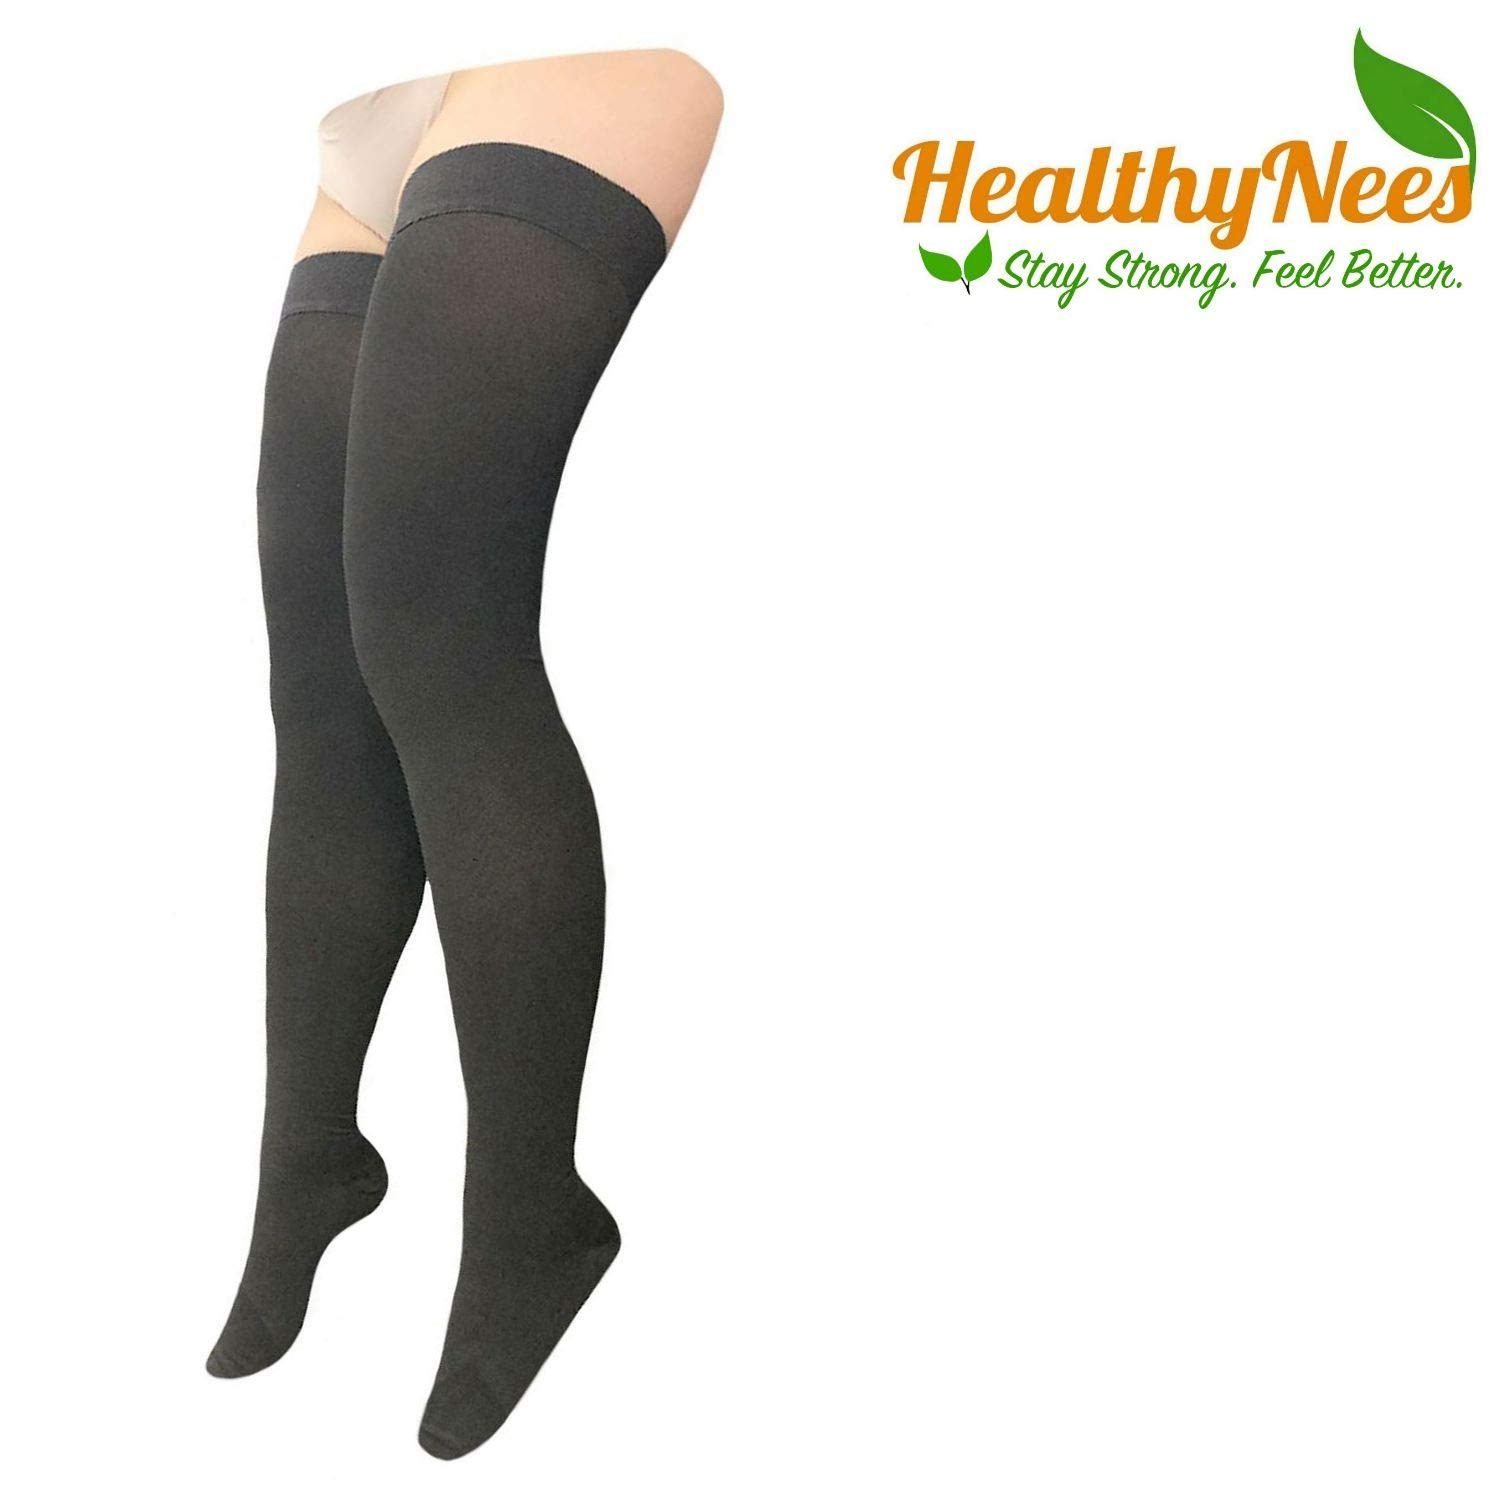 Healthynees Thigh Closed Toe 20 30 Mmhg Compression Full